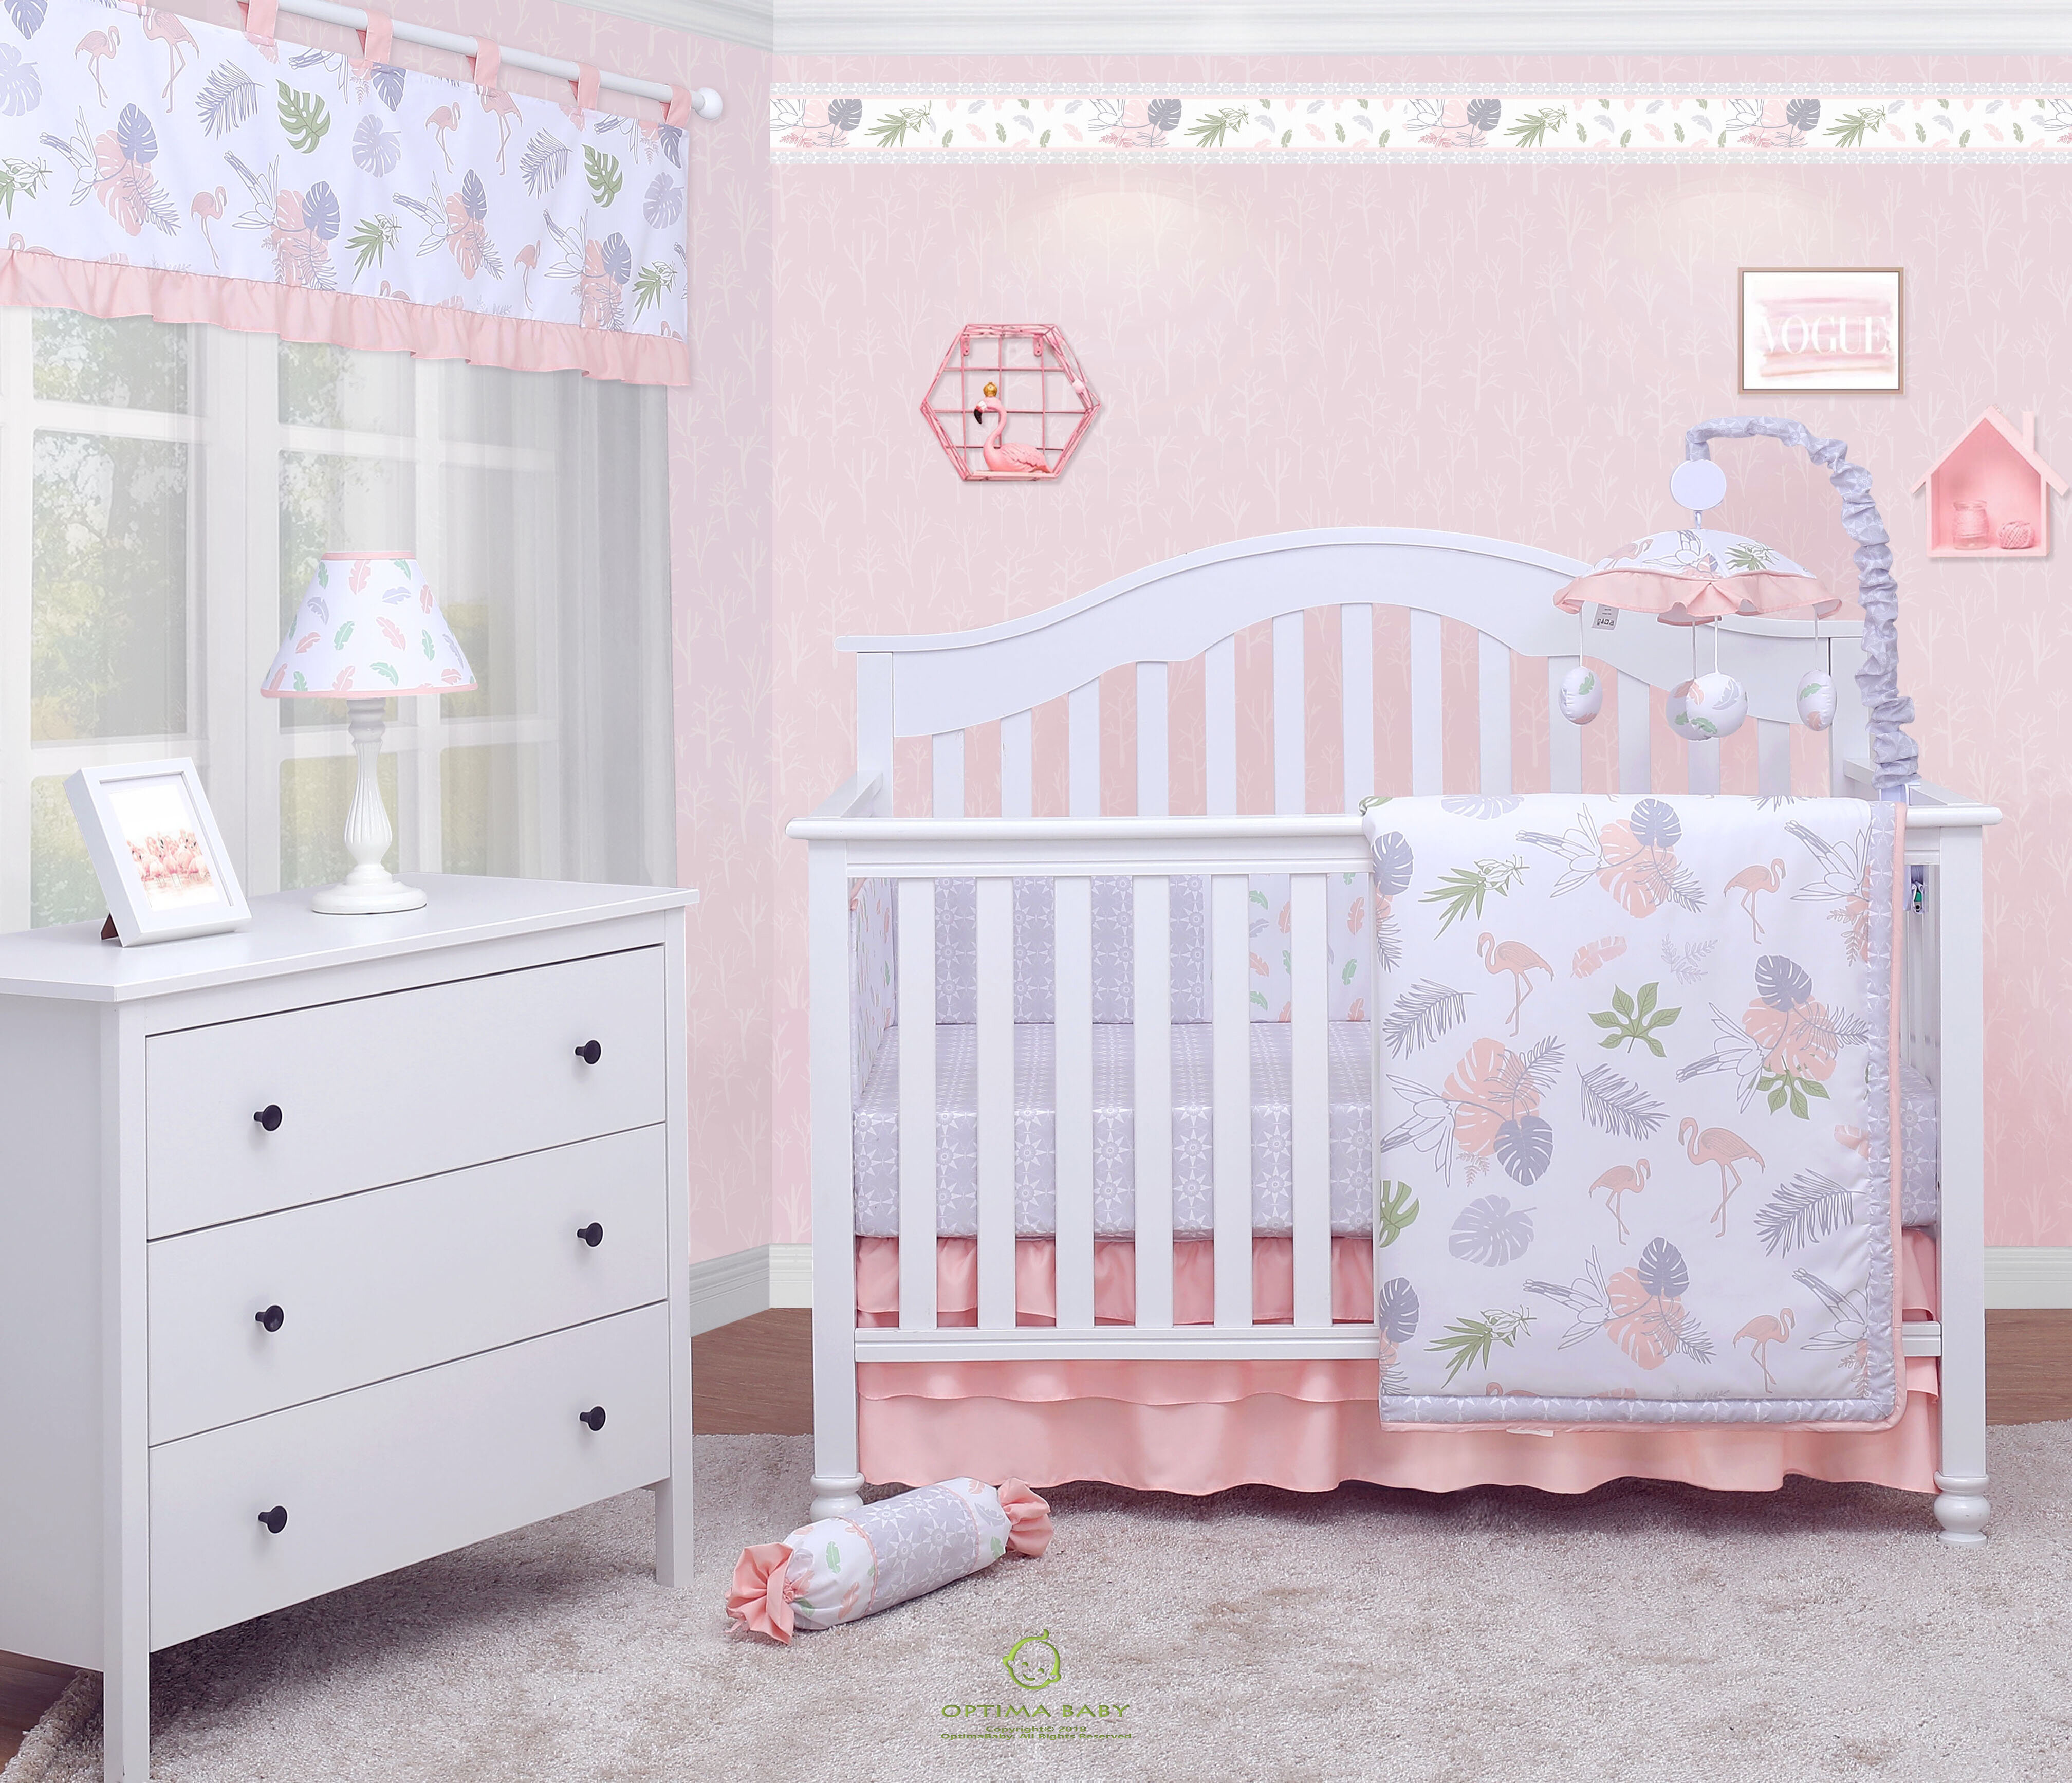 Design; In Crib Cotton Five Piece Kit Crib Bed Cotton Removable And Washable Childrens Bedding Package Novel